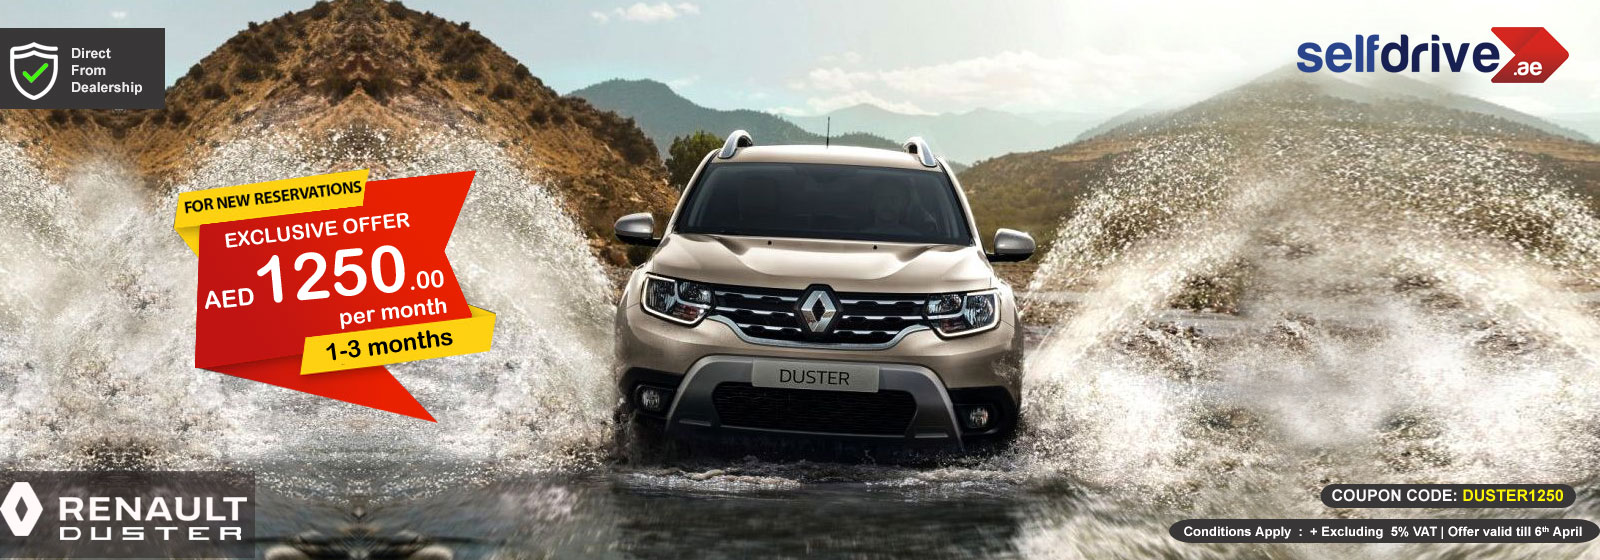 Rent Renault Duster exclusive offer for 1-3 months